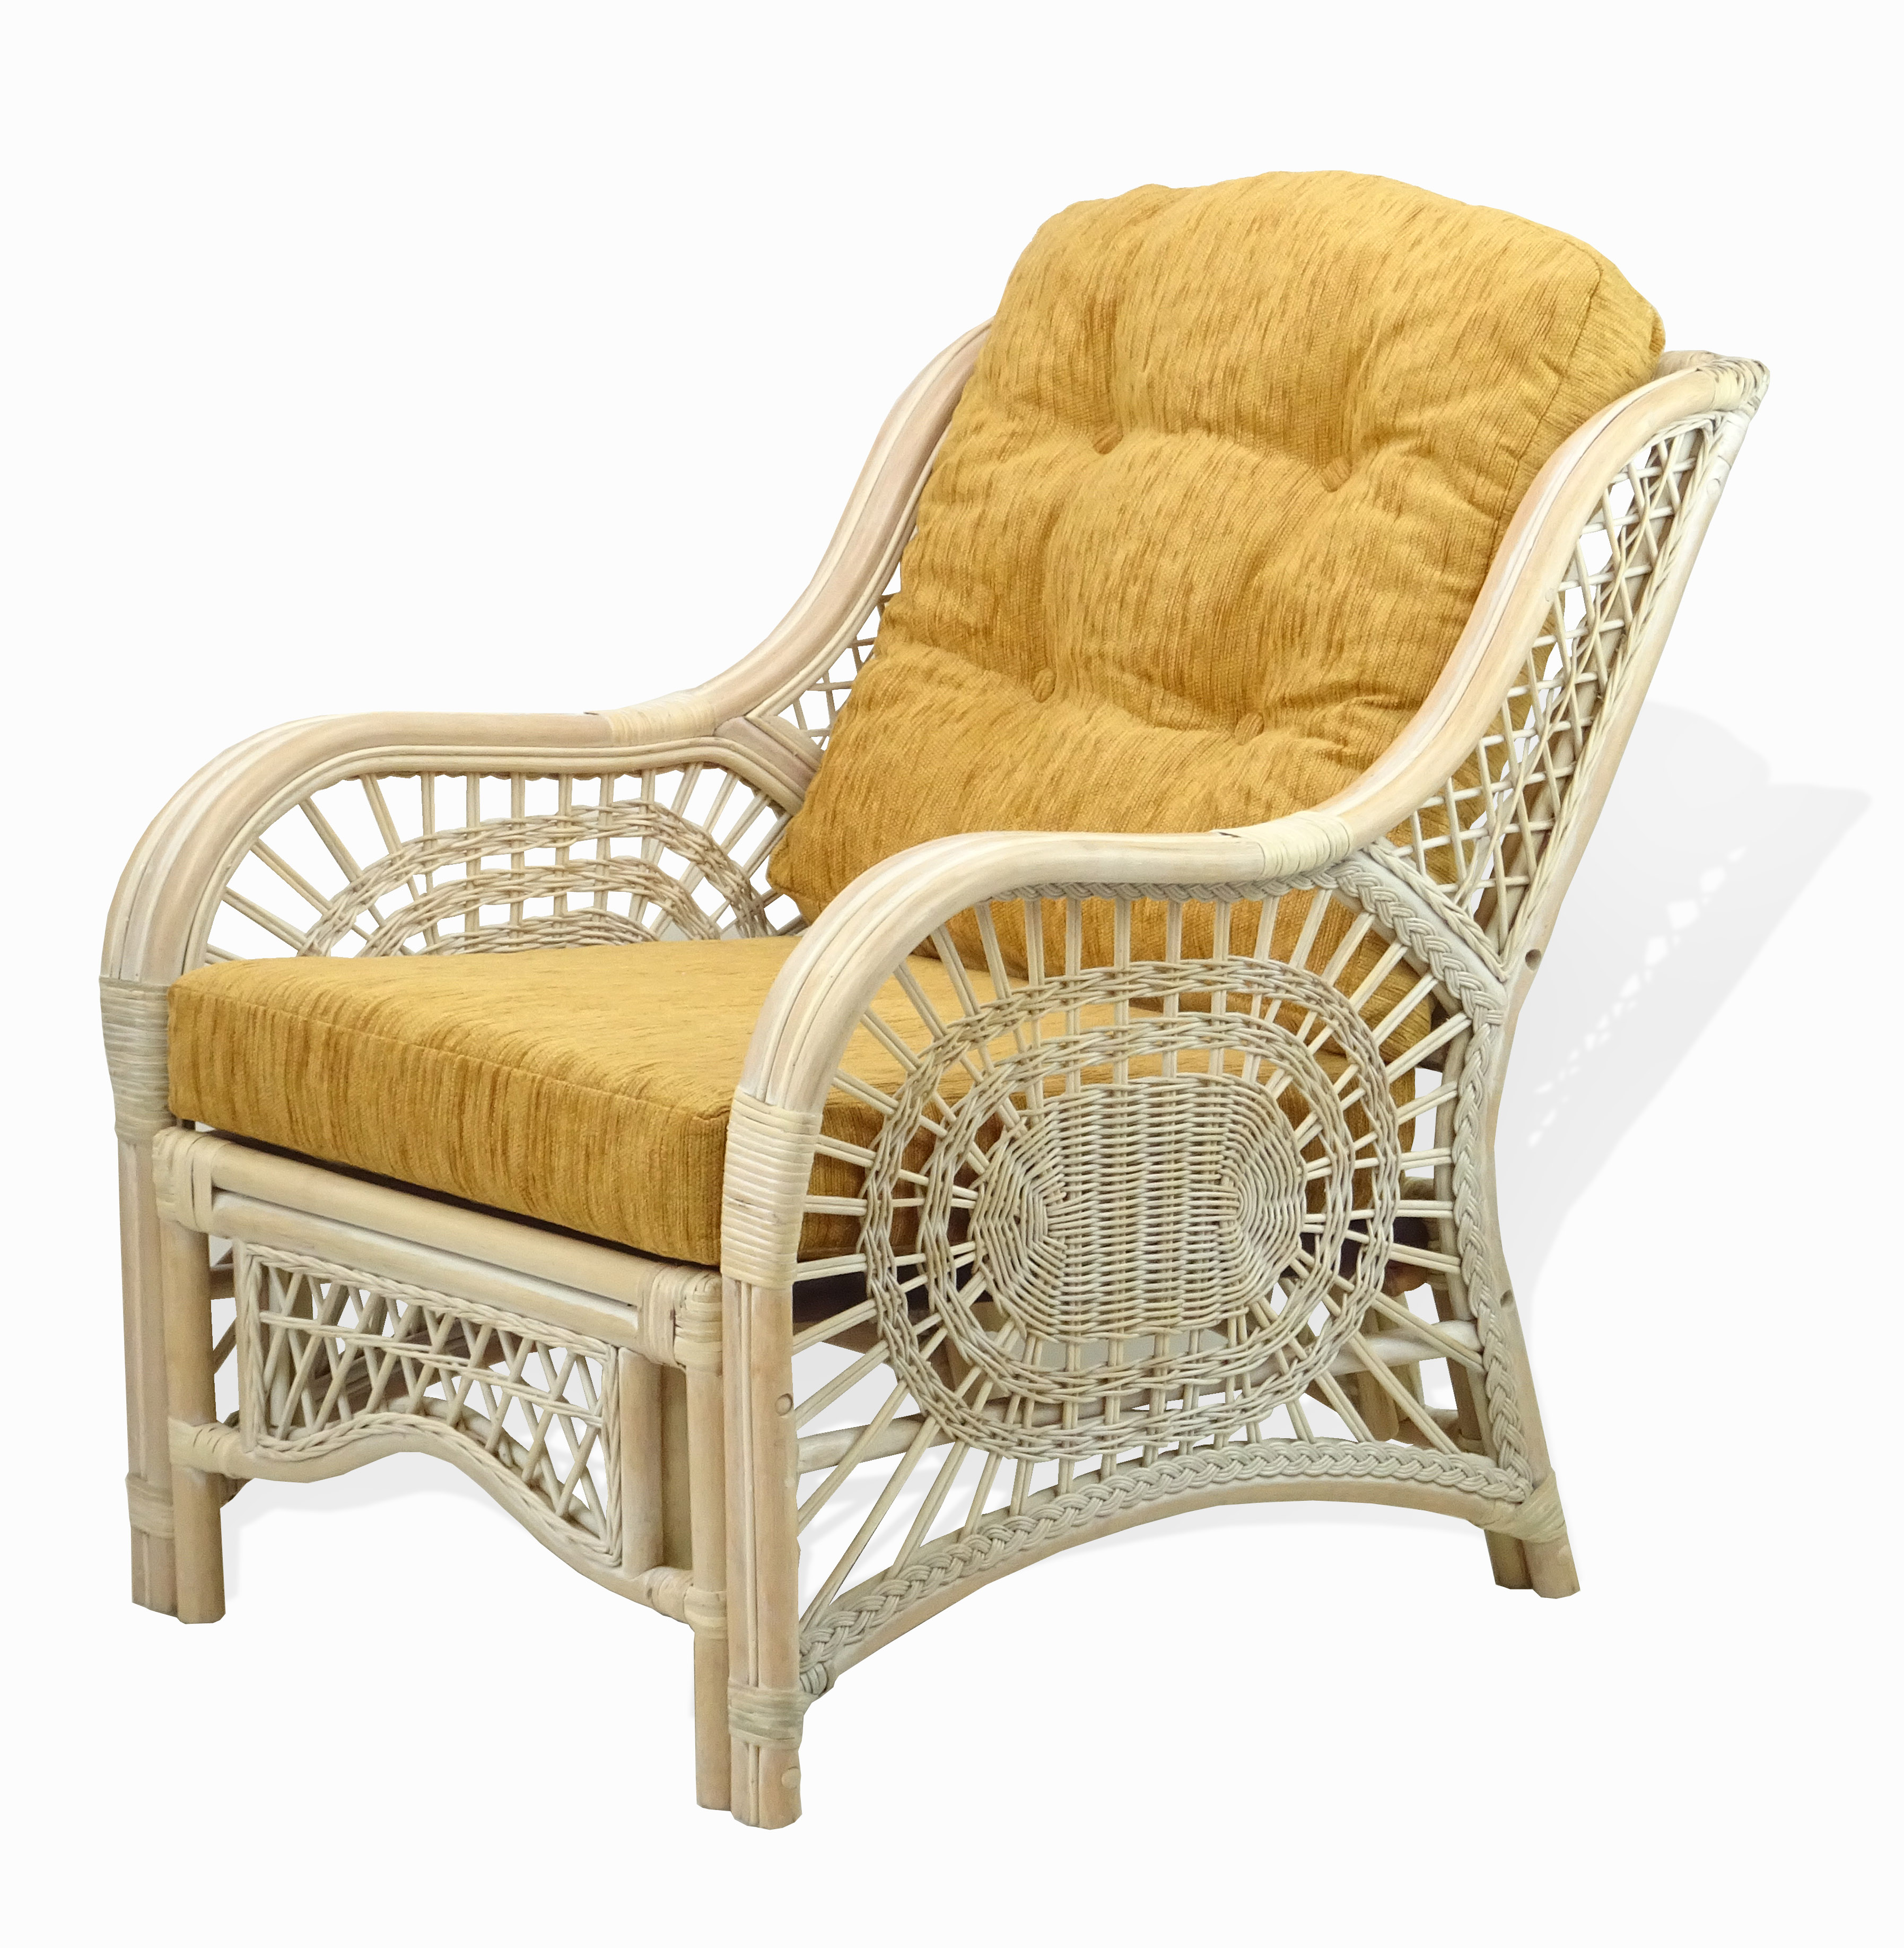 Bamboo Chair Rate: Buy Malibu Chair In USA, Best Price, Free Shipping